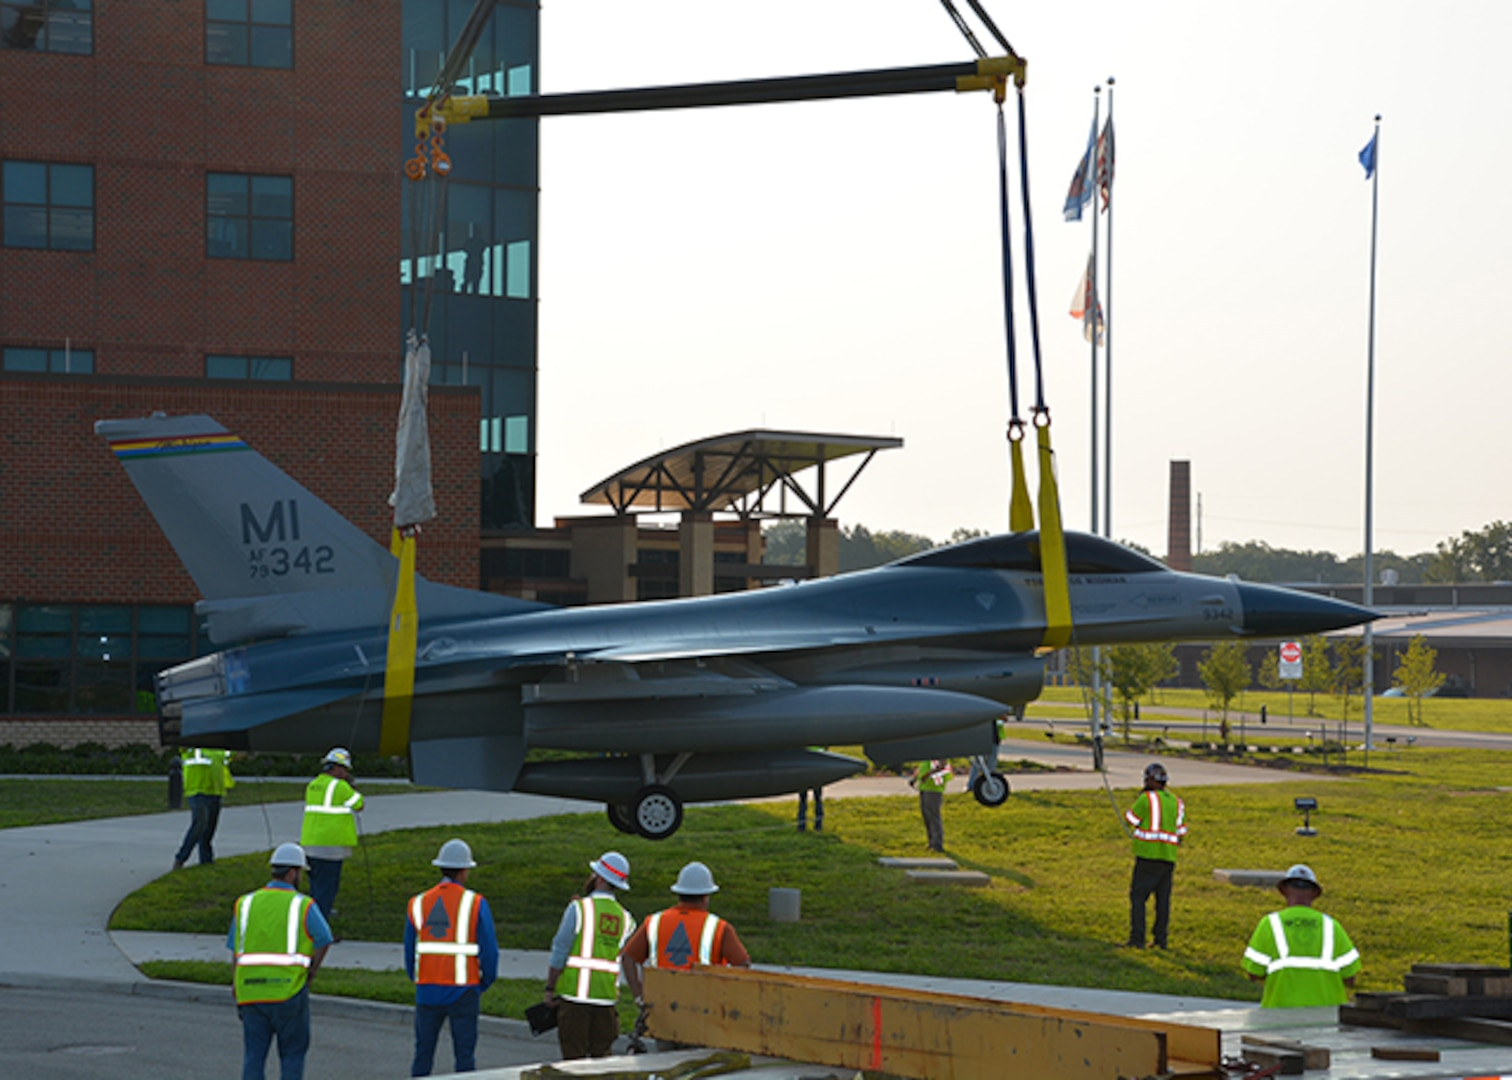 F-16 Fighting Falcon static display in front of the DLA Aviation Operations Center